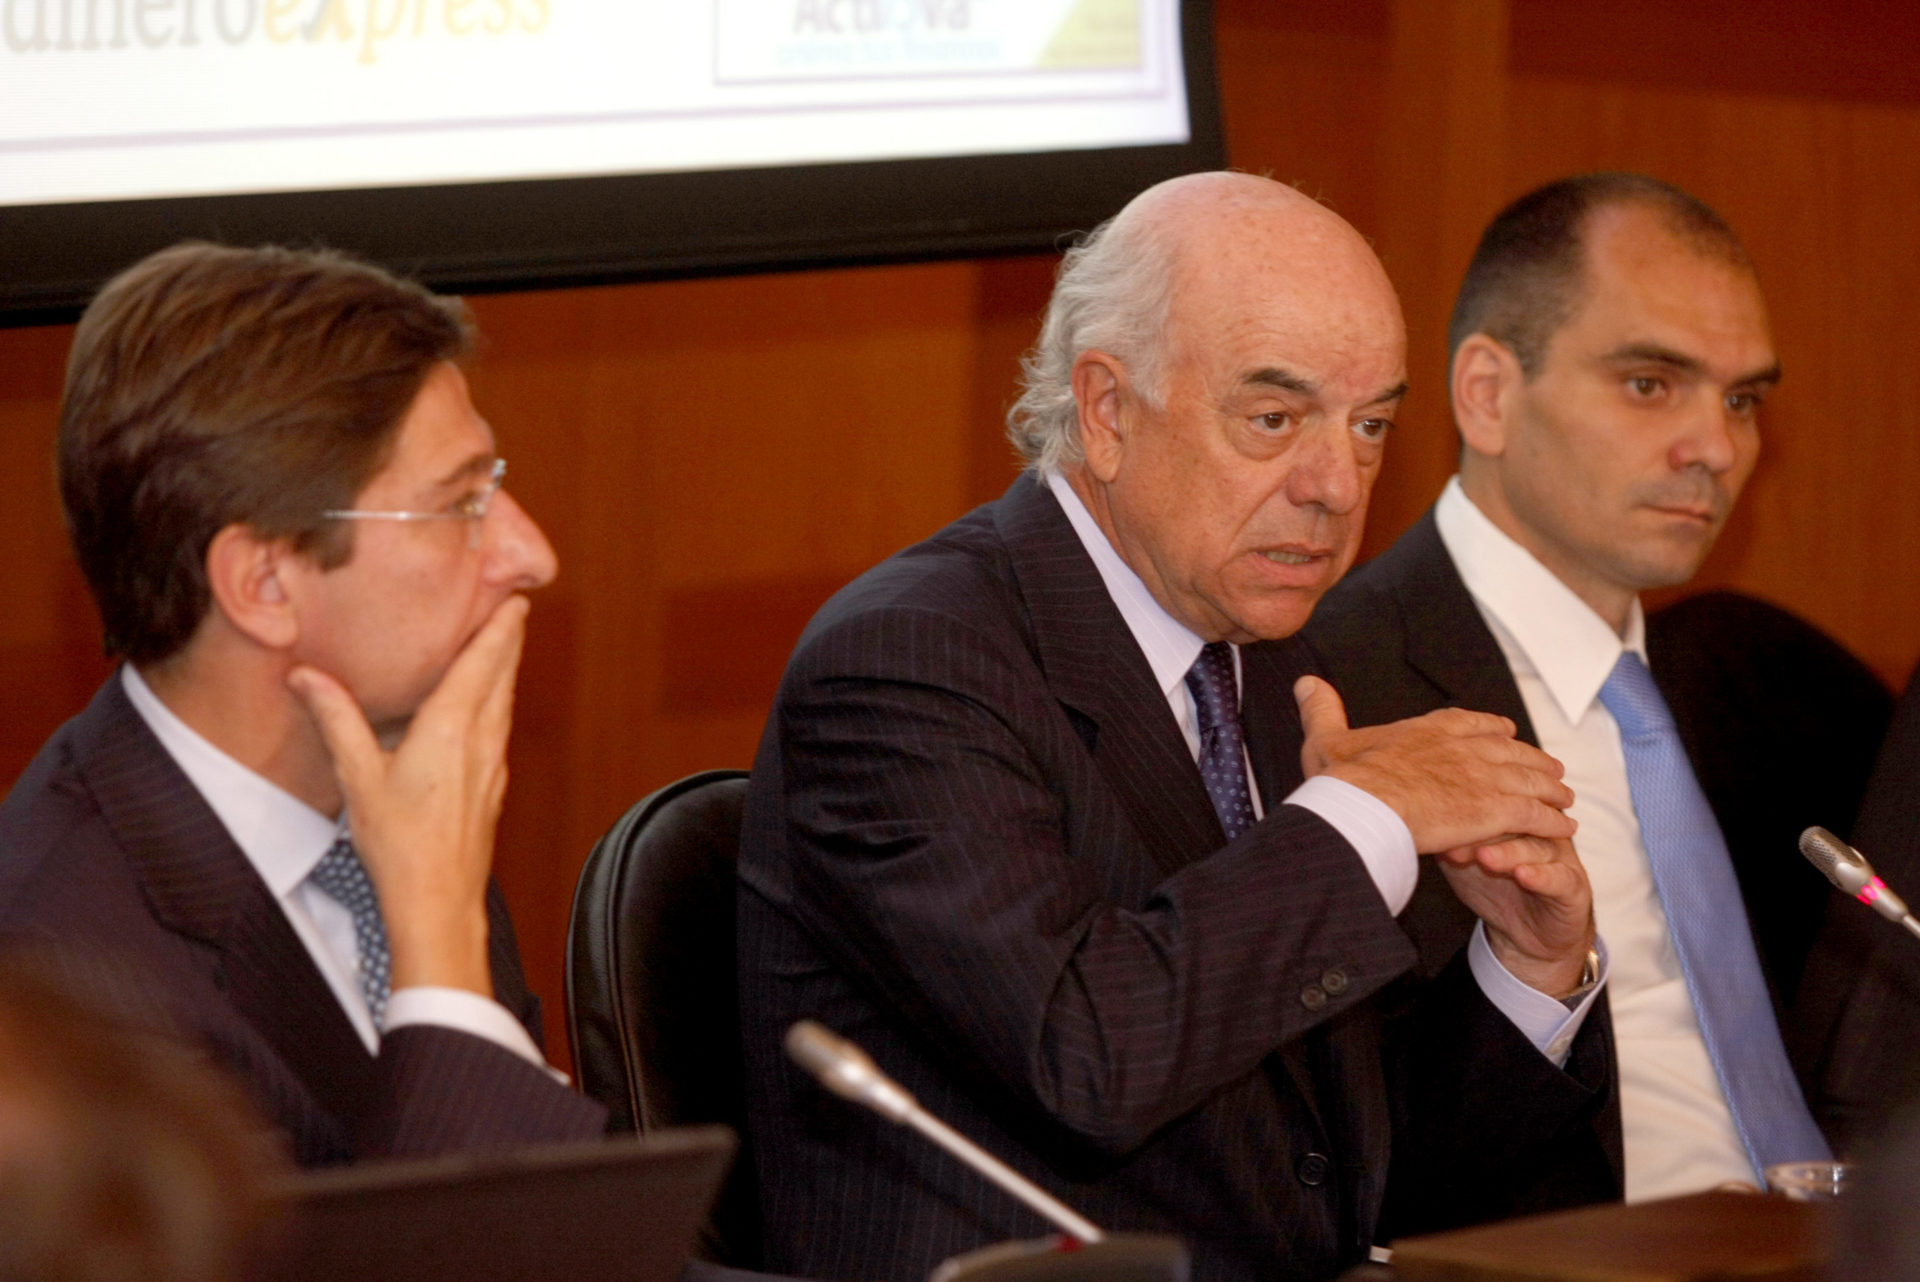 Picture of Francisco Gonzalez during his speech during the BBVA Tu cuentas launching